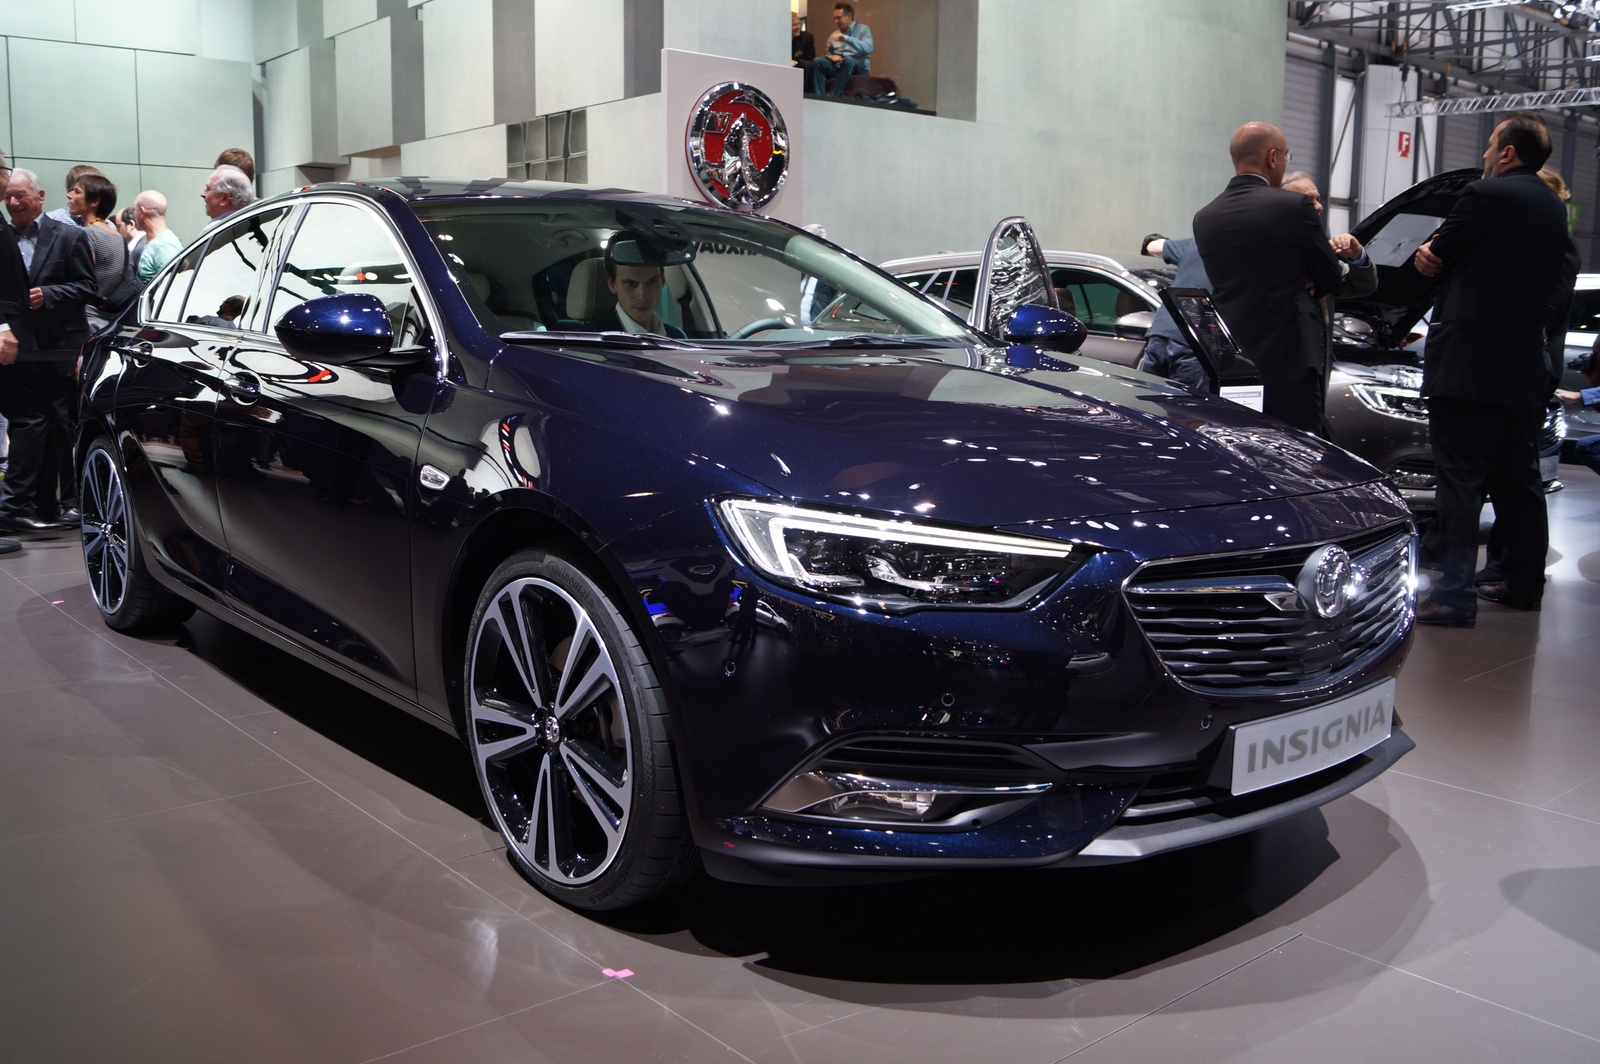 genewa 2017 nowy opel insignia grand sport i sports tourer menad er floty. Black Bedroom Furniture Sets. Home Design Ideas